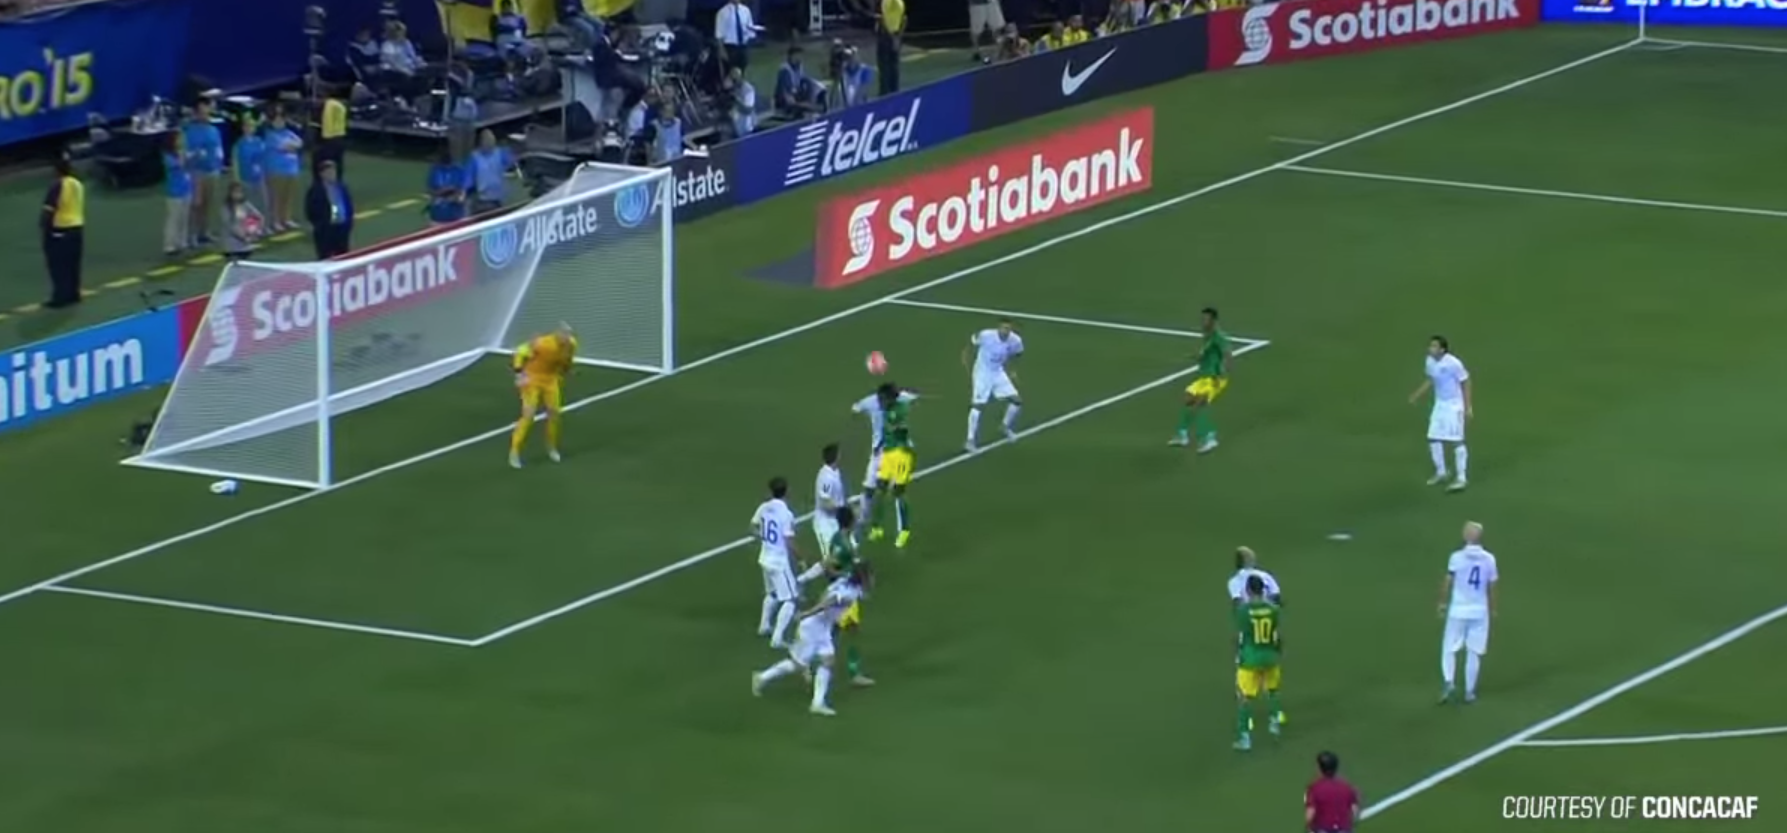 Eight yards out, this ball is routinely left by most goalkeepers for defenders to clear out on their own.